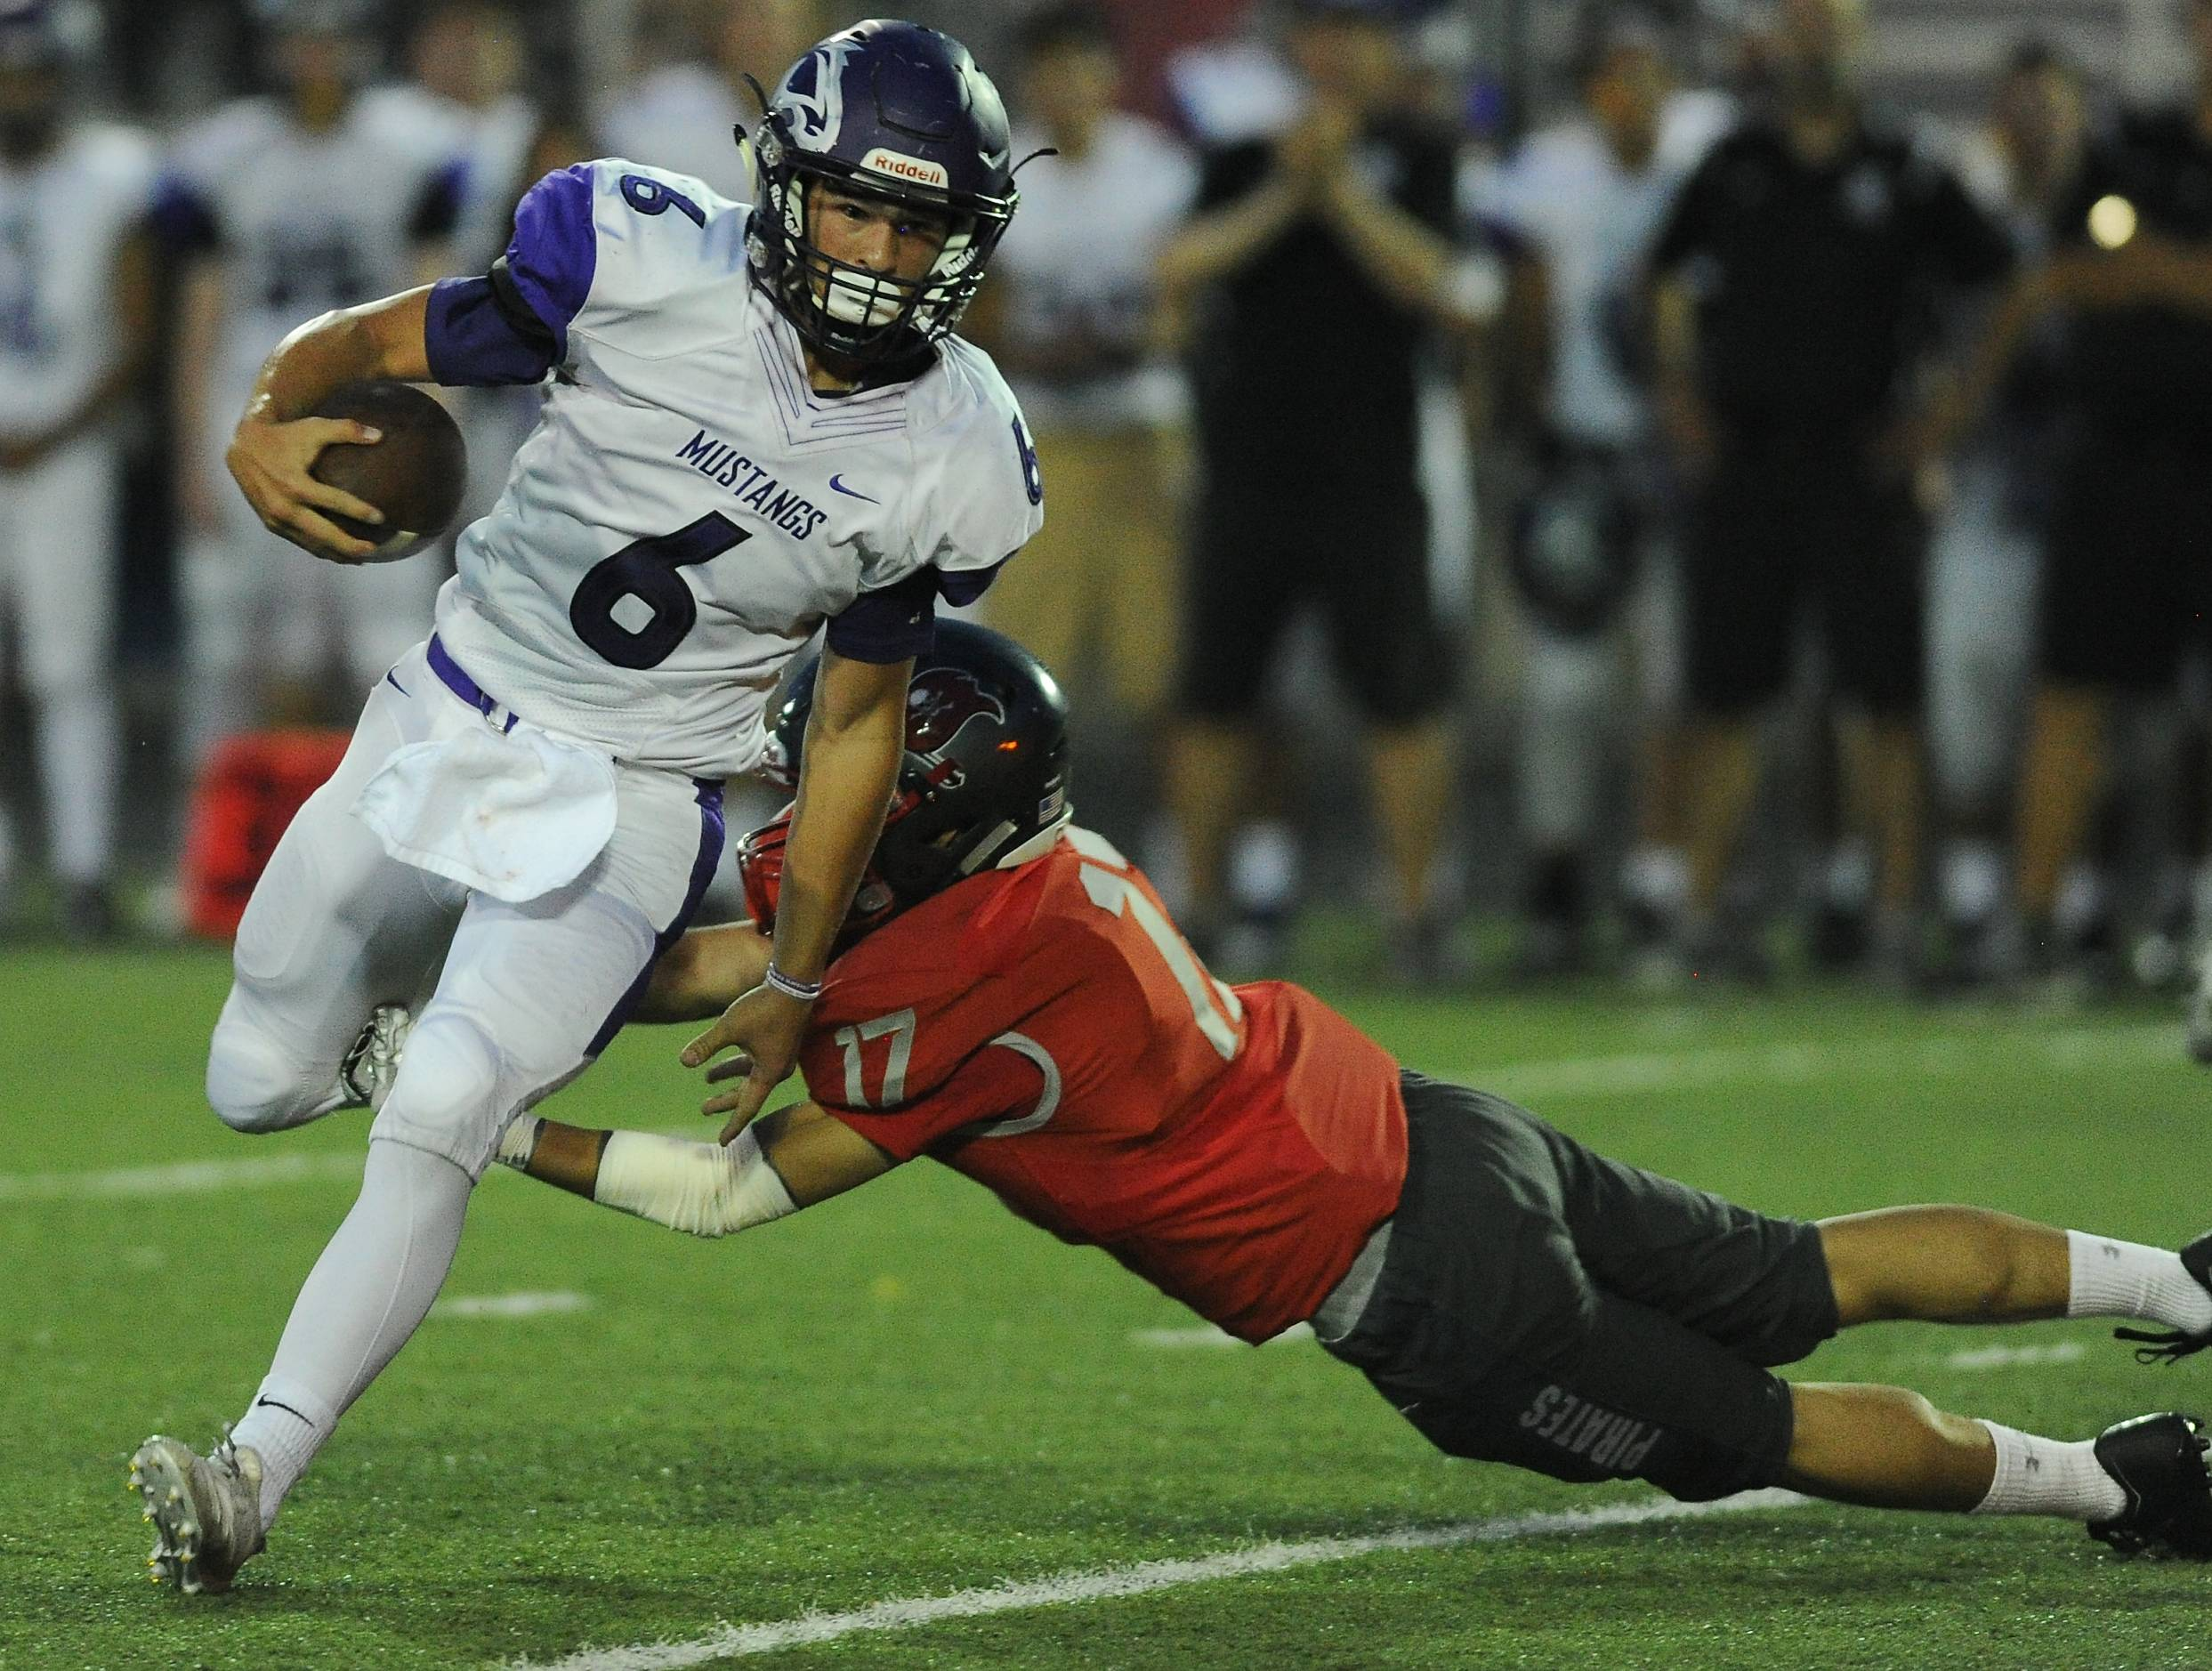 Images: Palatine vs. Rolling Meadows in week two football